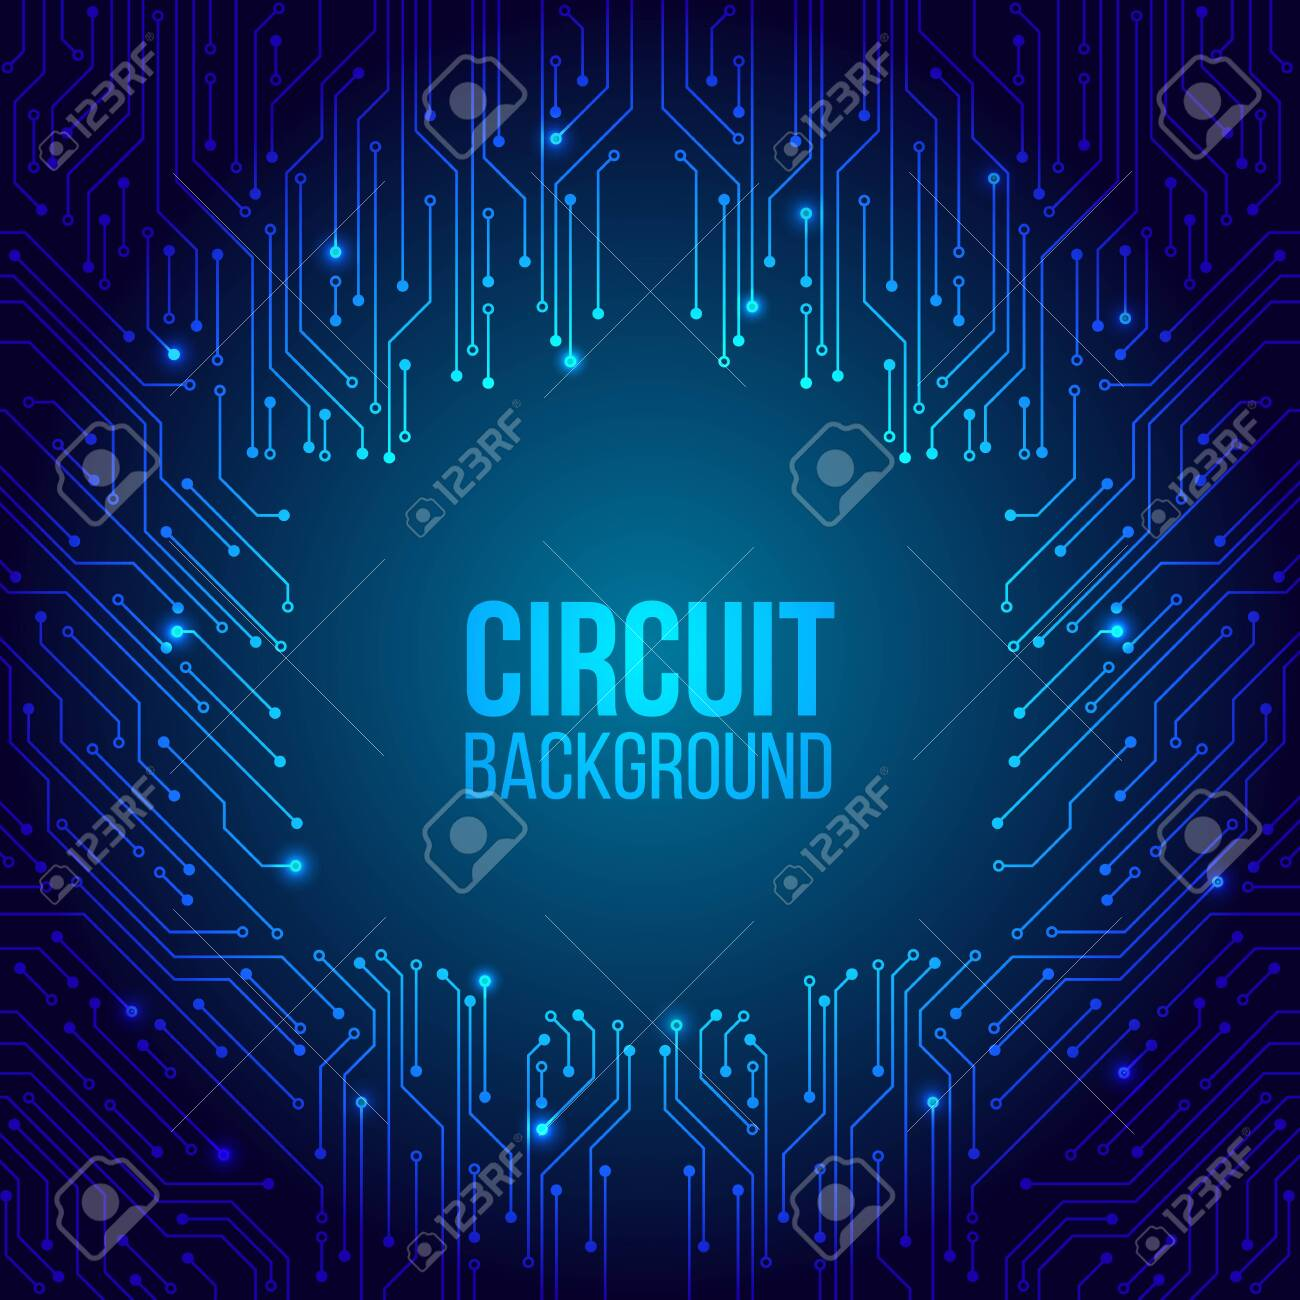 High-tech technology background texture. Circuit board minimal pattern. Science vector illustration. Abstract digital modern concept style. - 128279202